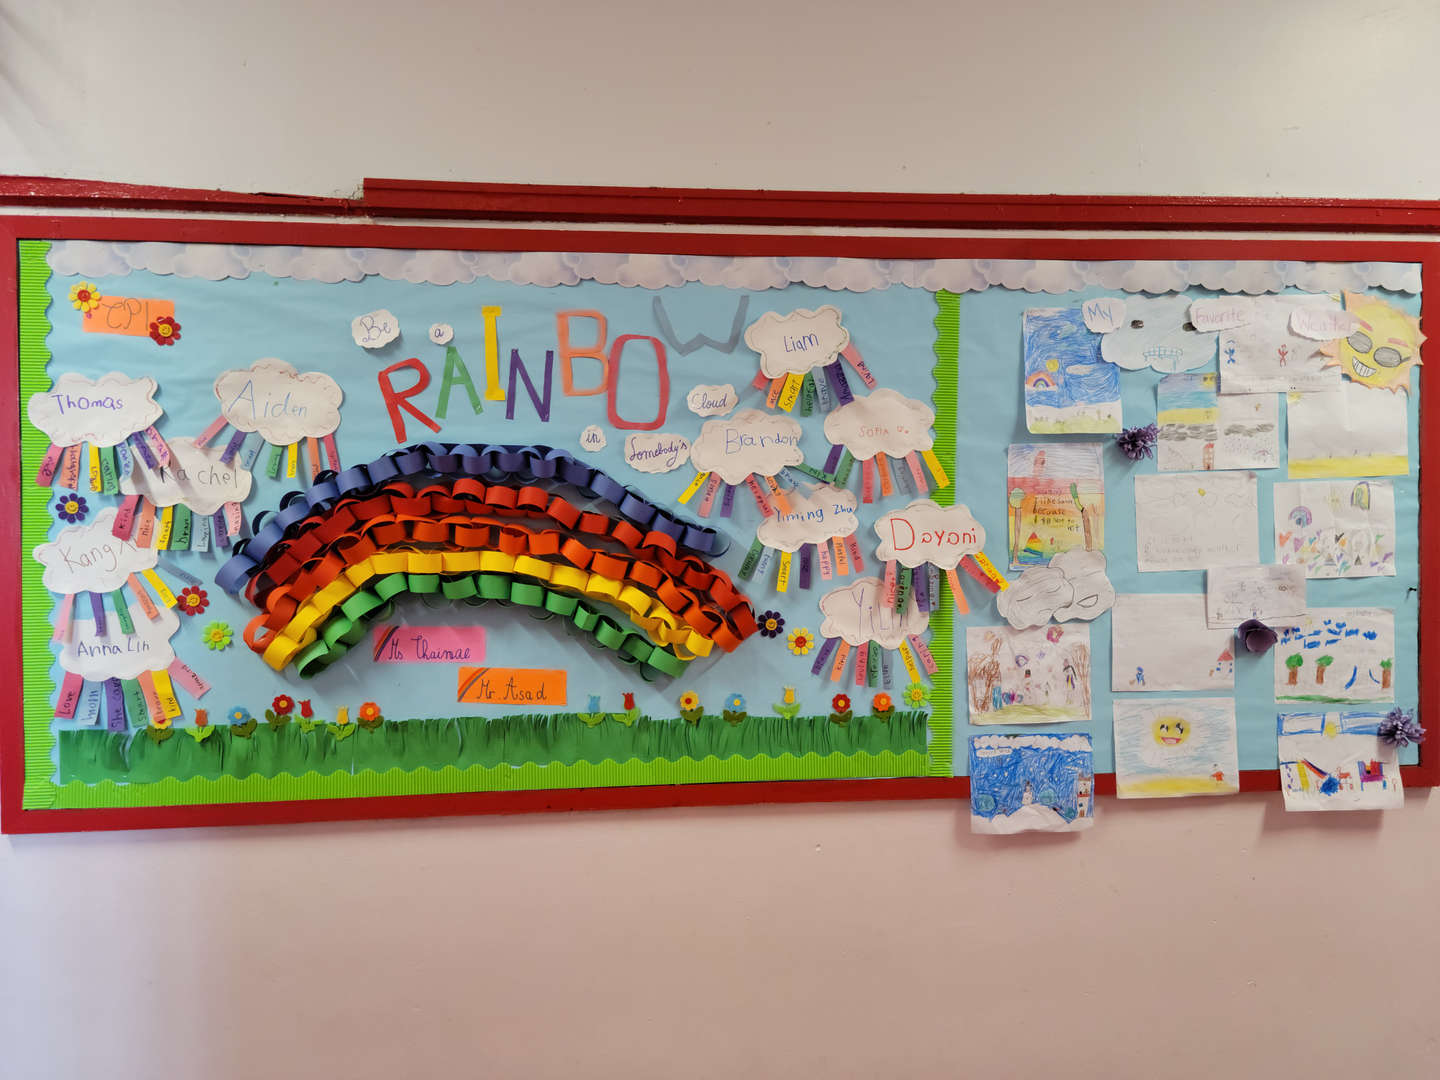 A school bulletin board showing words that express kindness.